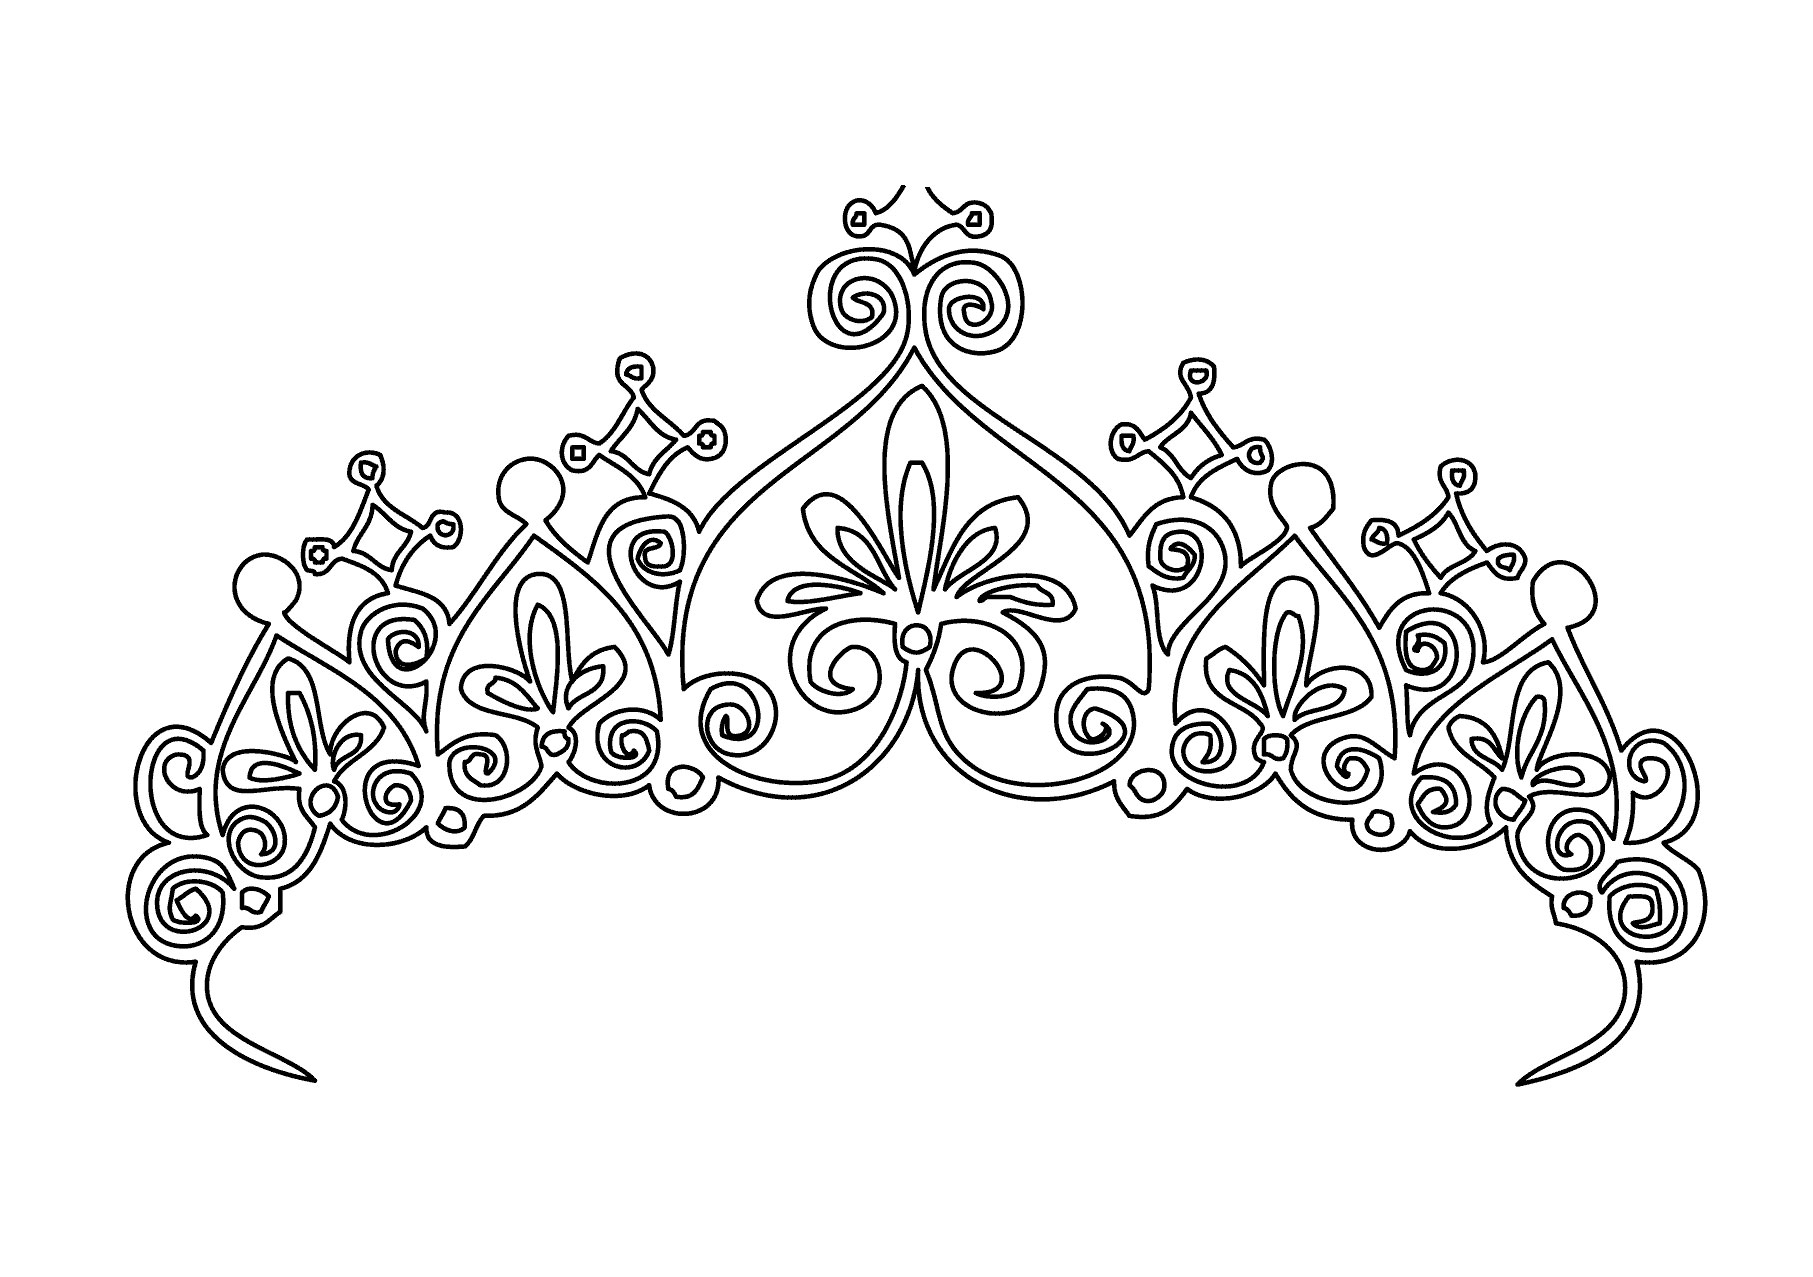 Queens Crown Drawing at GetDrawings.com | Free for personal use ...